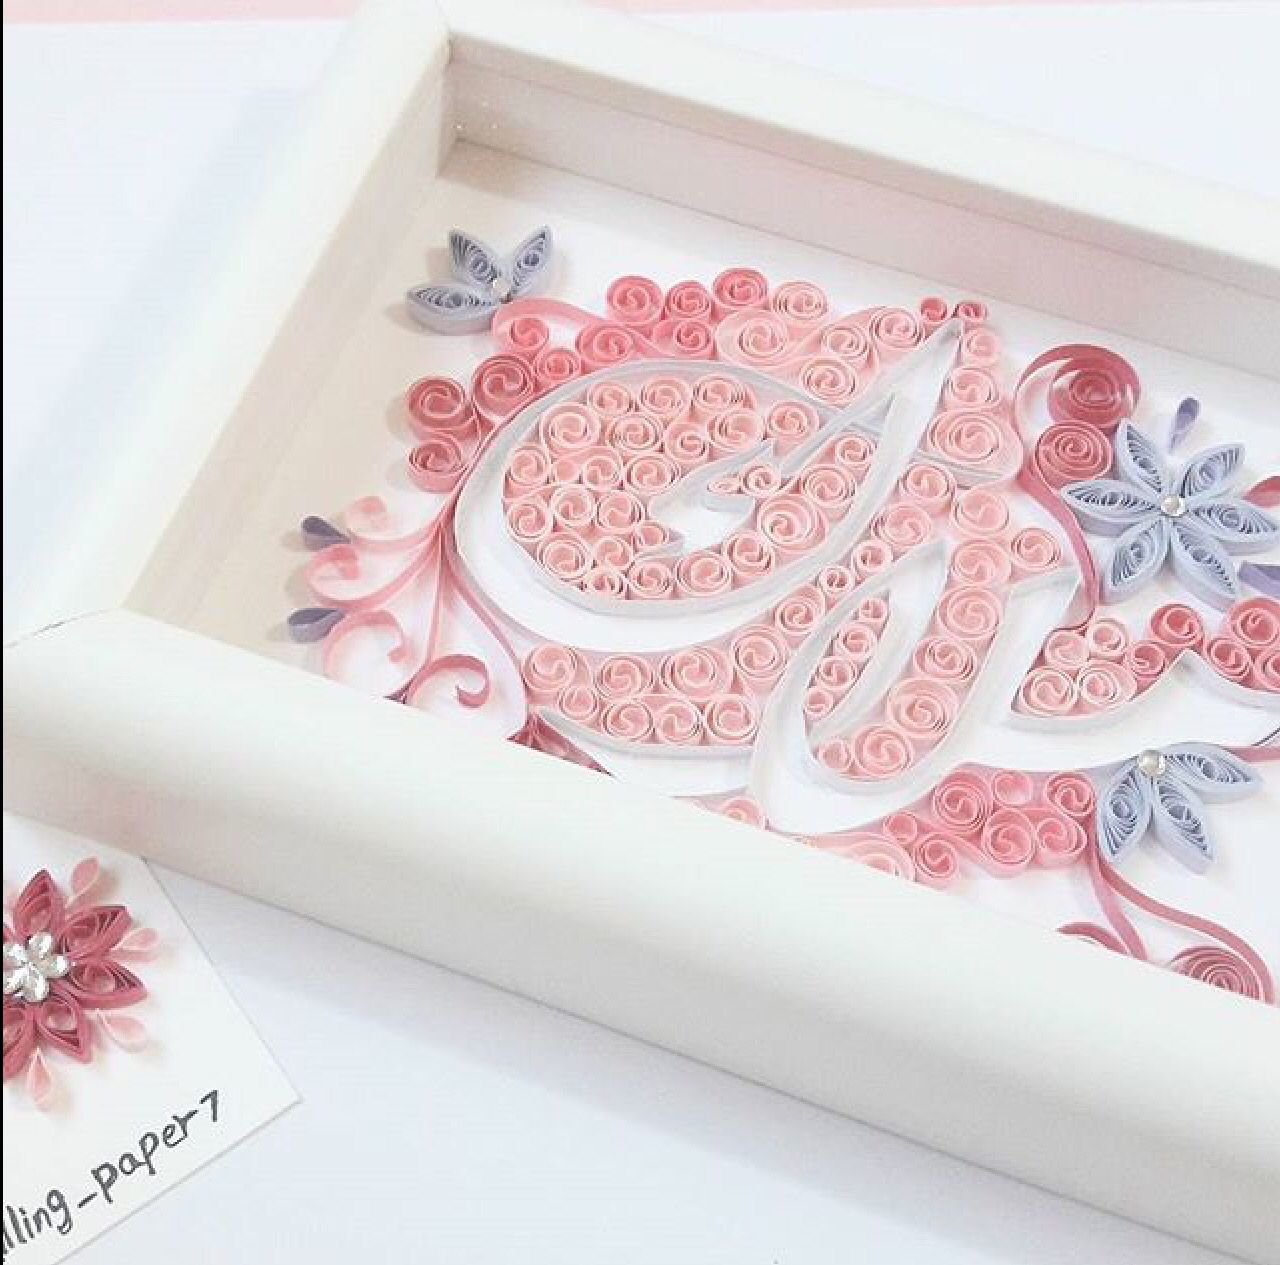 Malak Quilling Paper اعمال بالورق شغل يدوي اسم ملاك Paper Quilling Quilling Dress Sketches